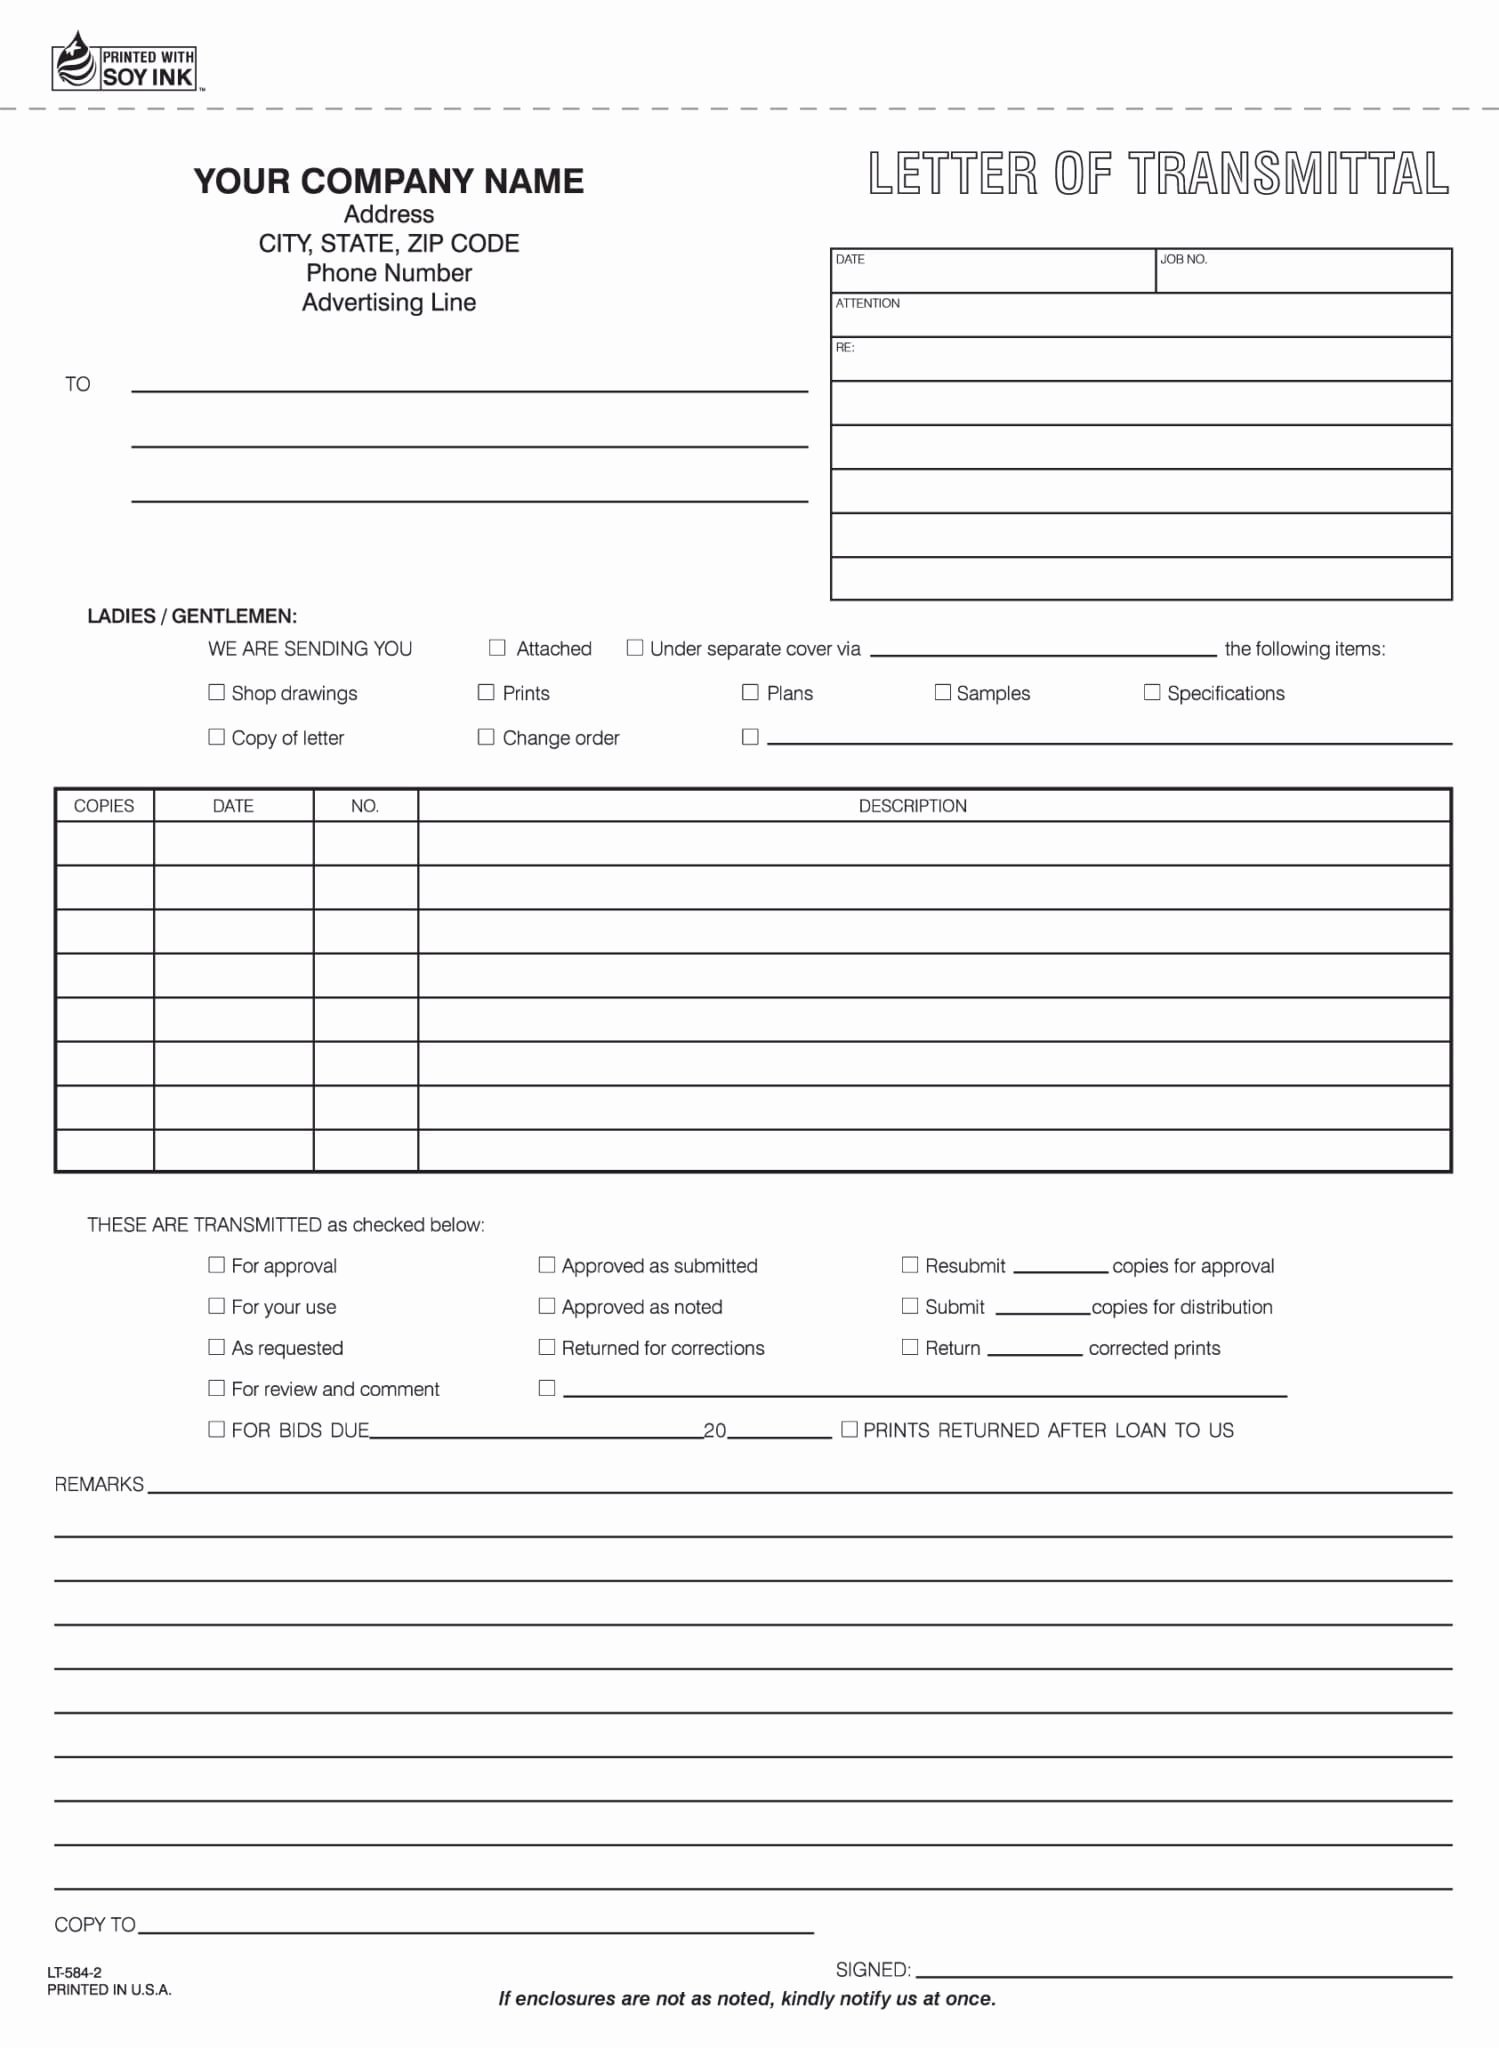 Construction Transmittal form Template Elegant 2 Part Contractor Service Letter Of Transmittal form